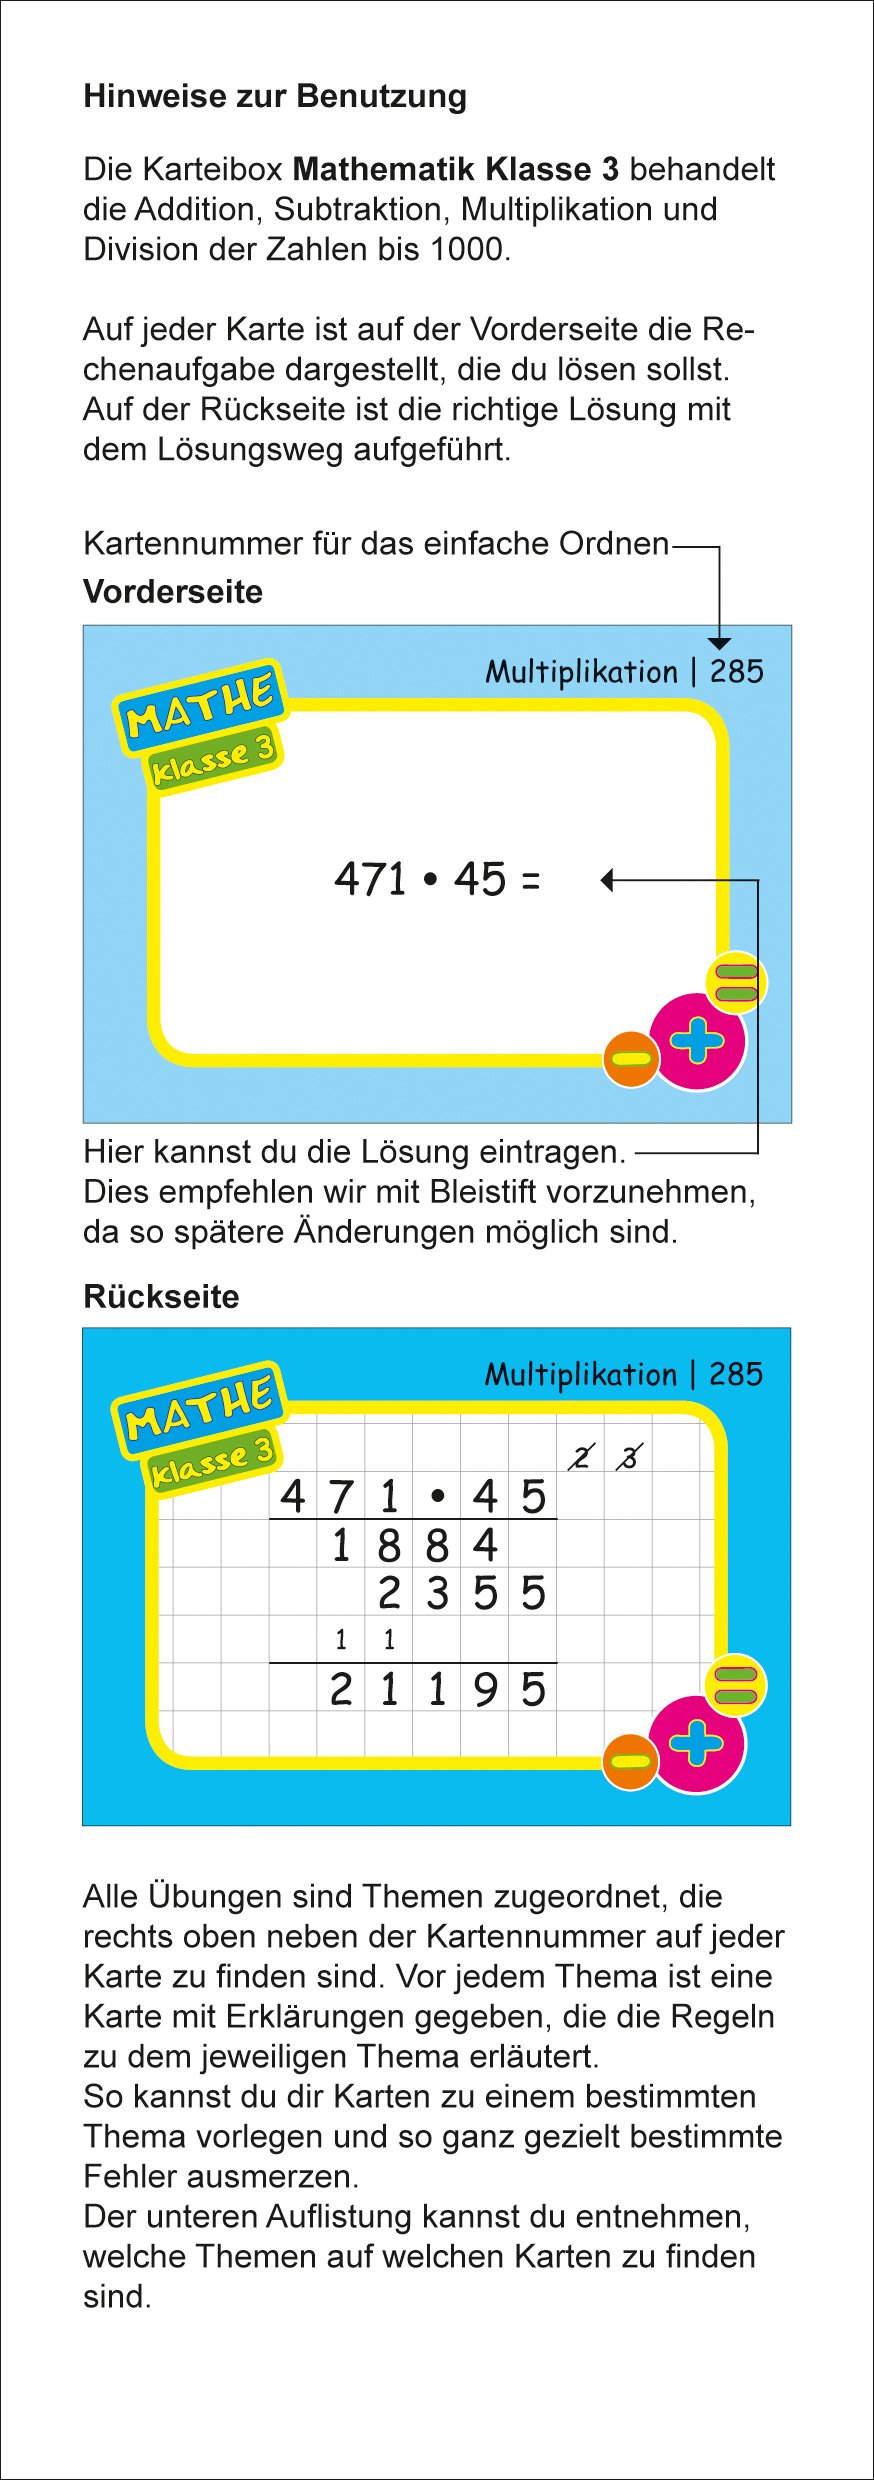 Attractive Quer Multiplikation Arbeitsblatt Photos - Kindergarten ...